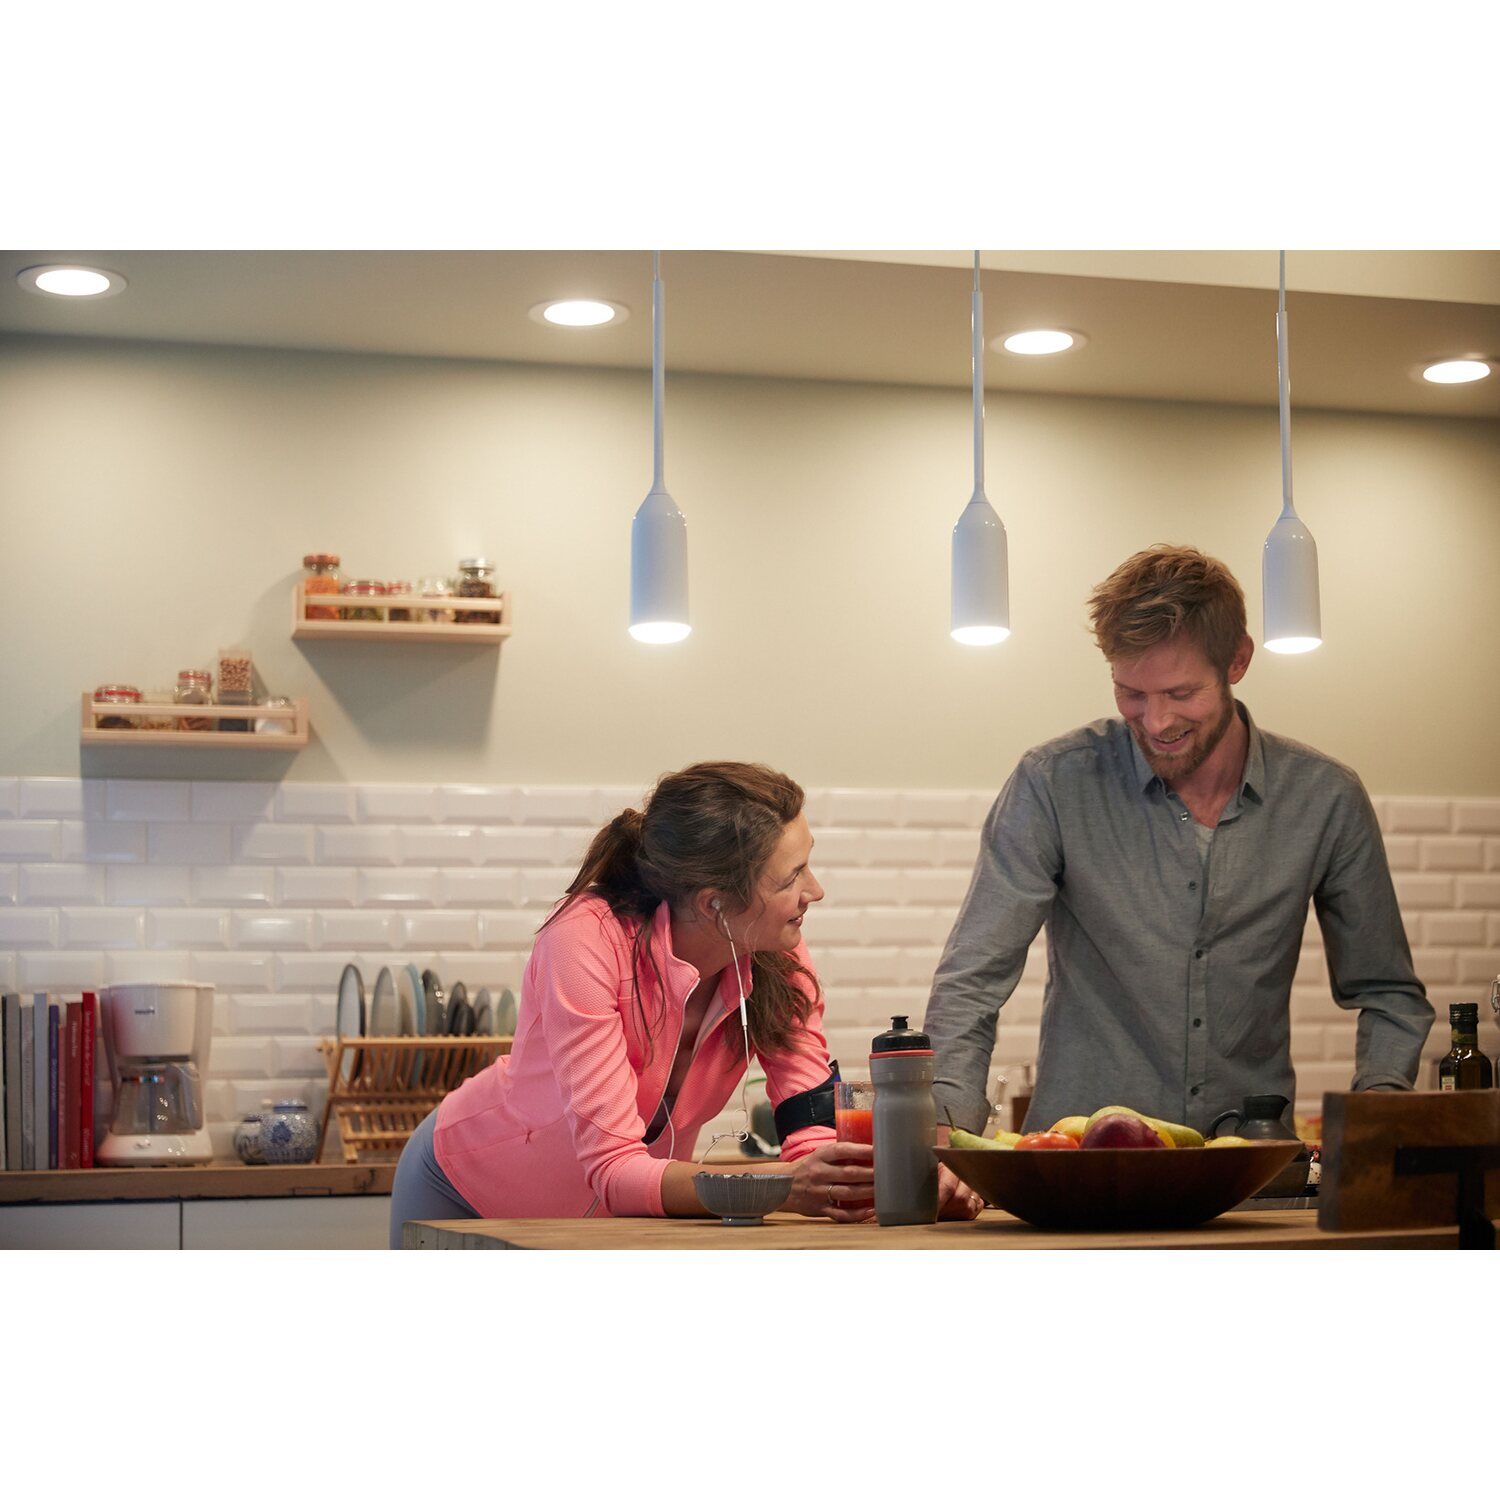 Philips Hue LED Pendelleuchte Devote White Ambiance inkl. Dimmer Weiß EEK: A+